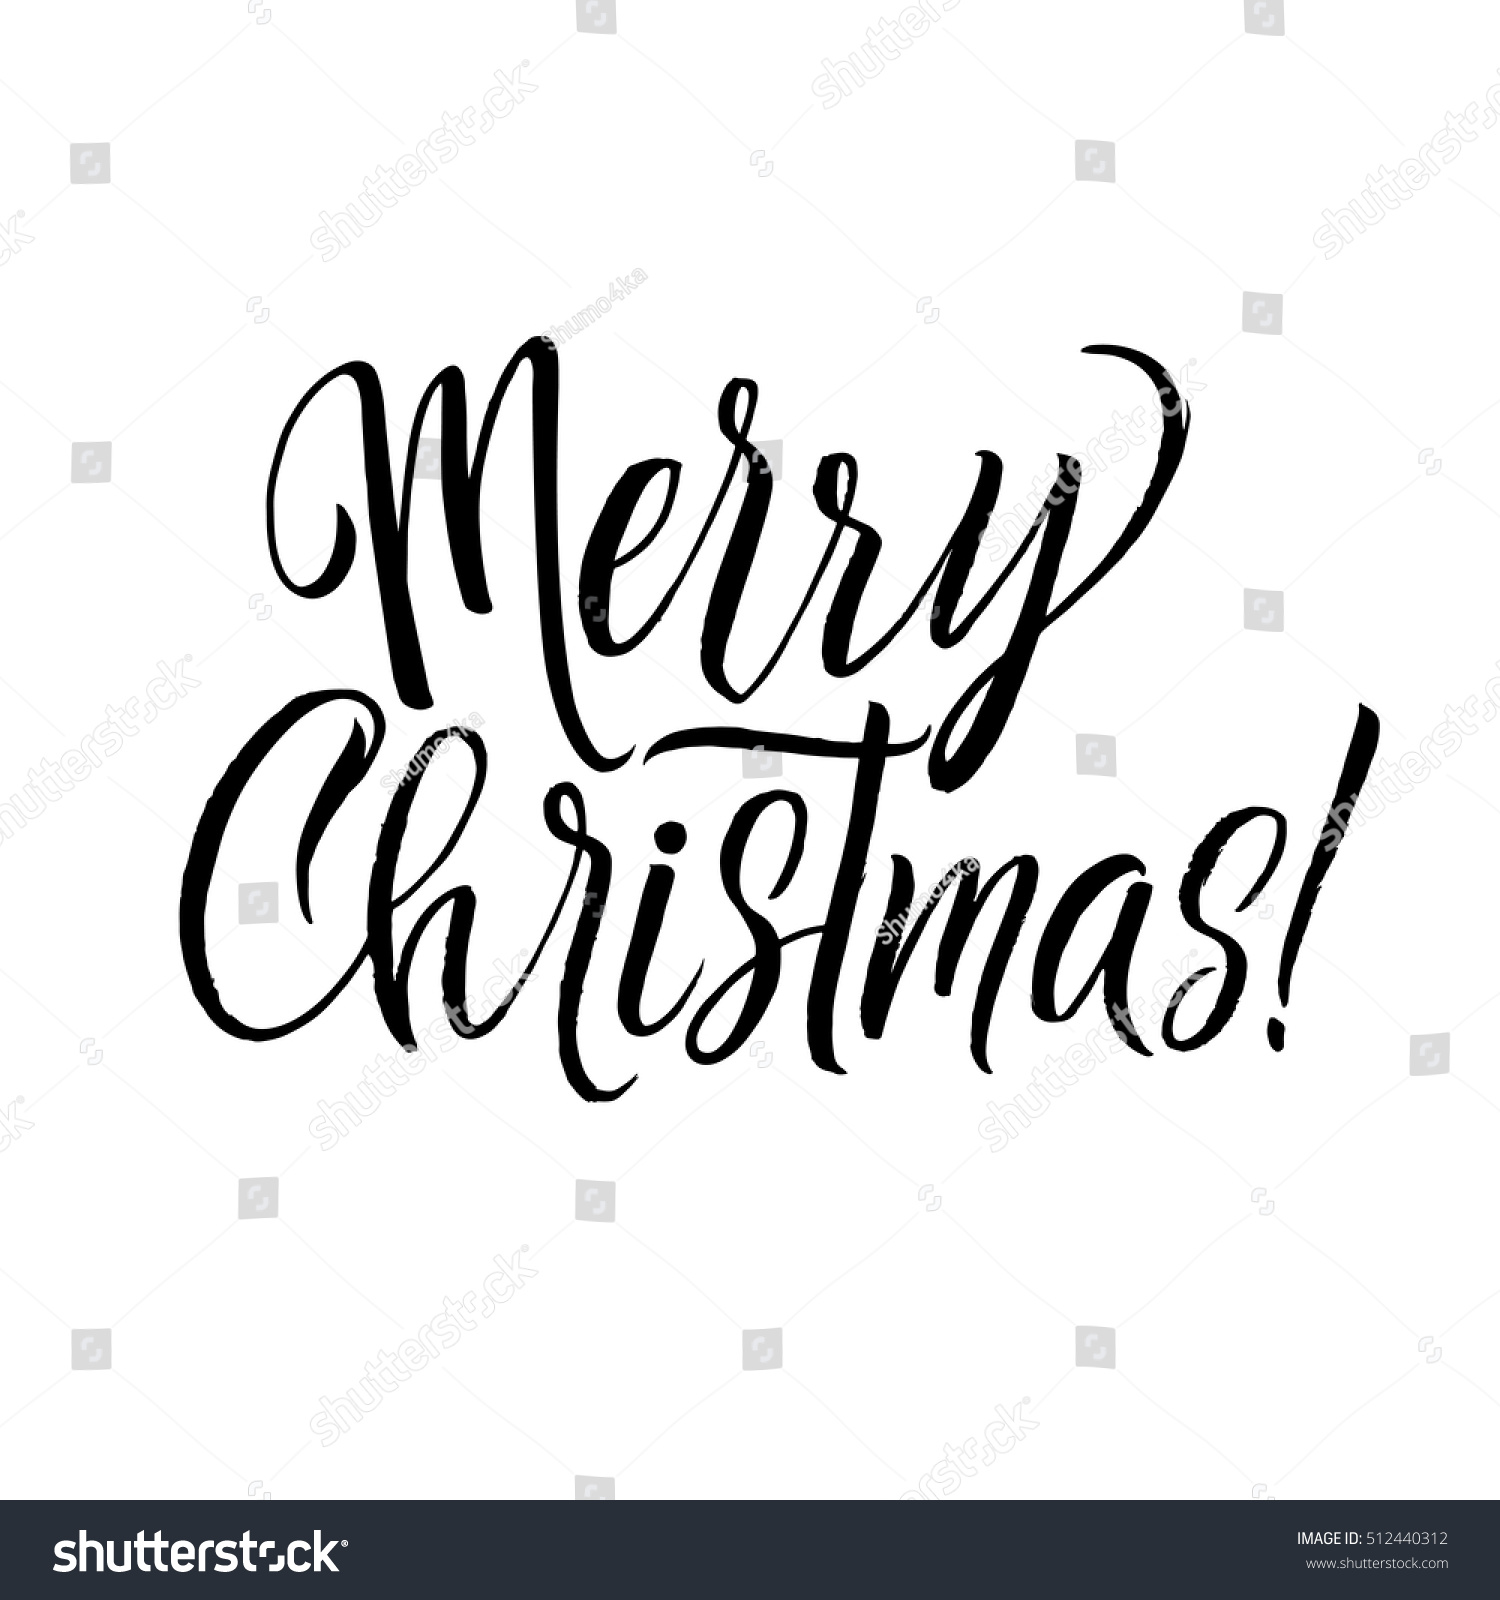 merry christmas calligraphy card greeting design on white background ez canvas